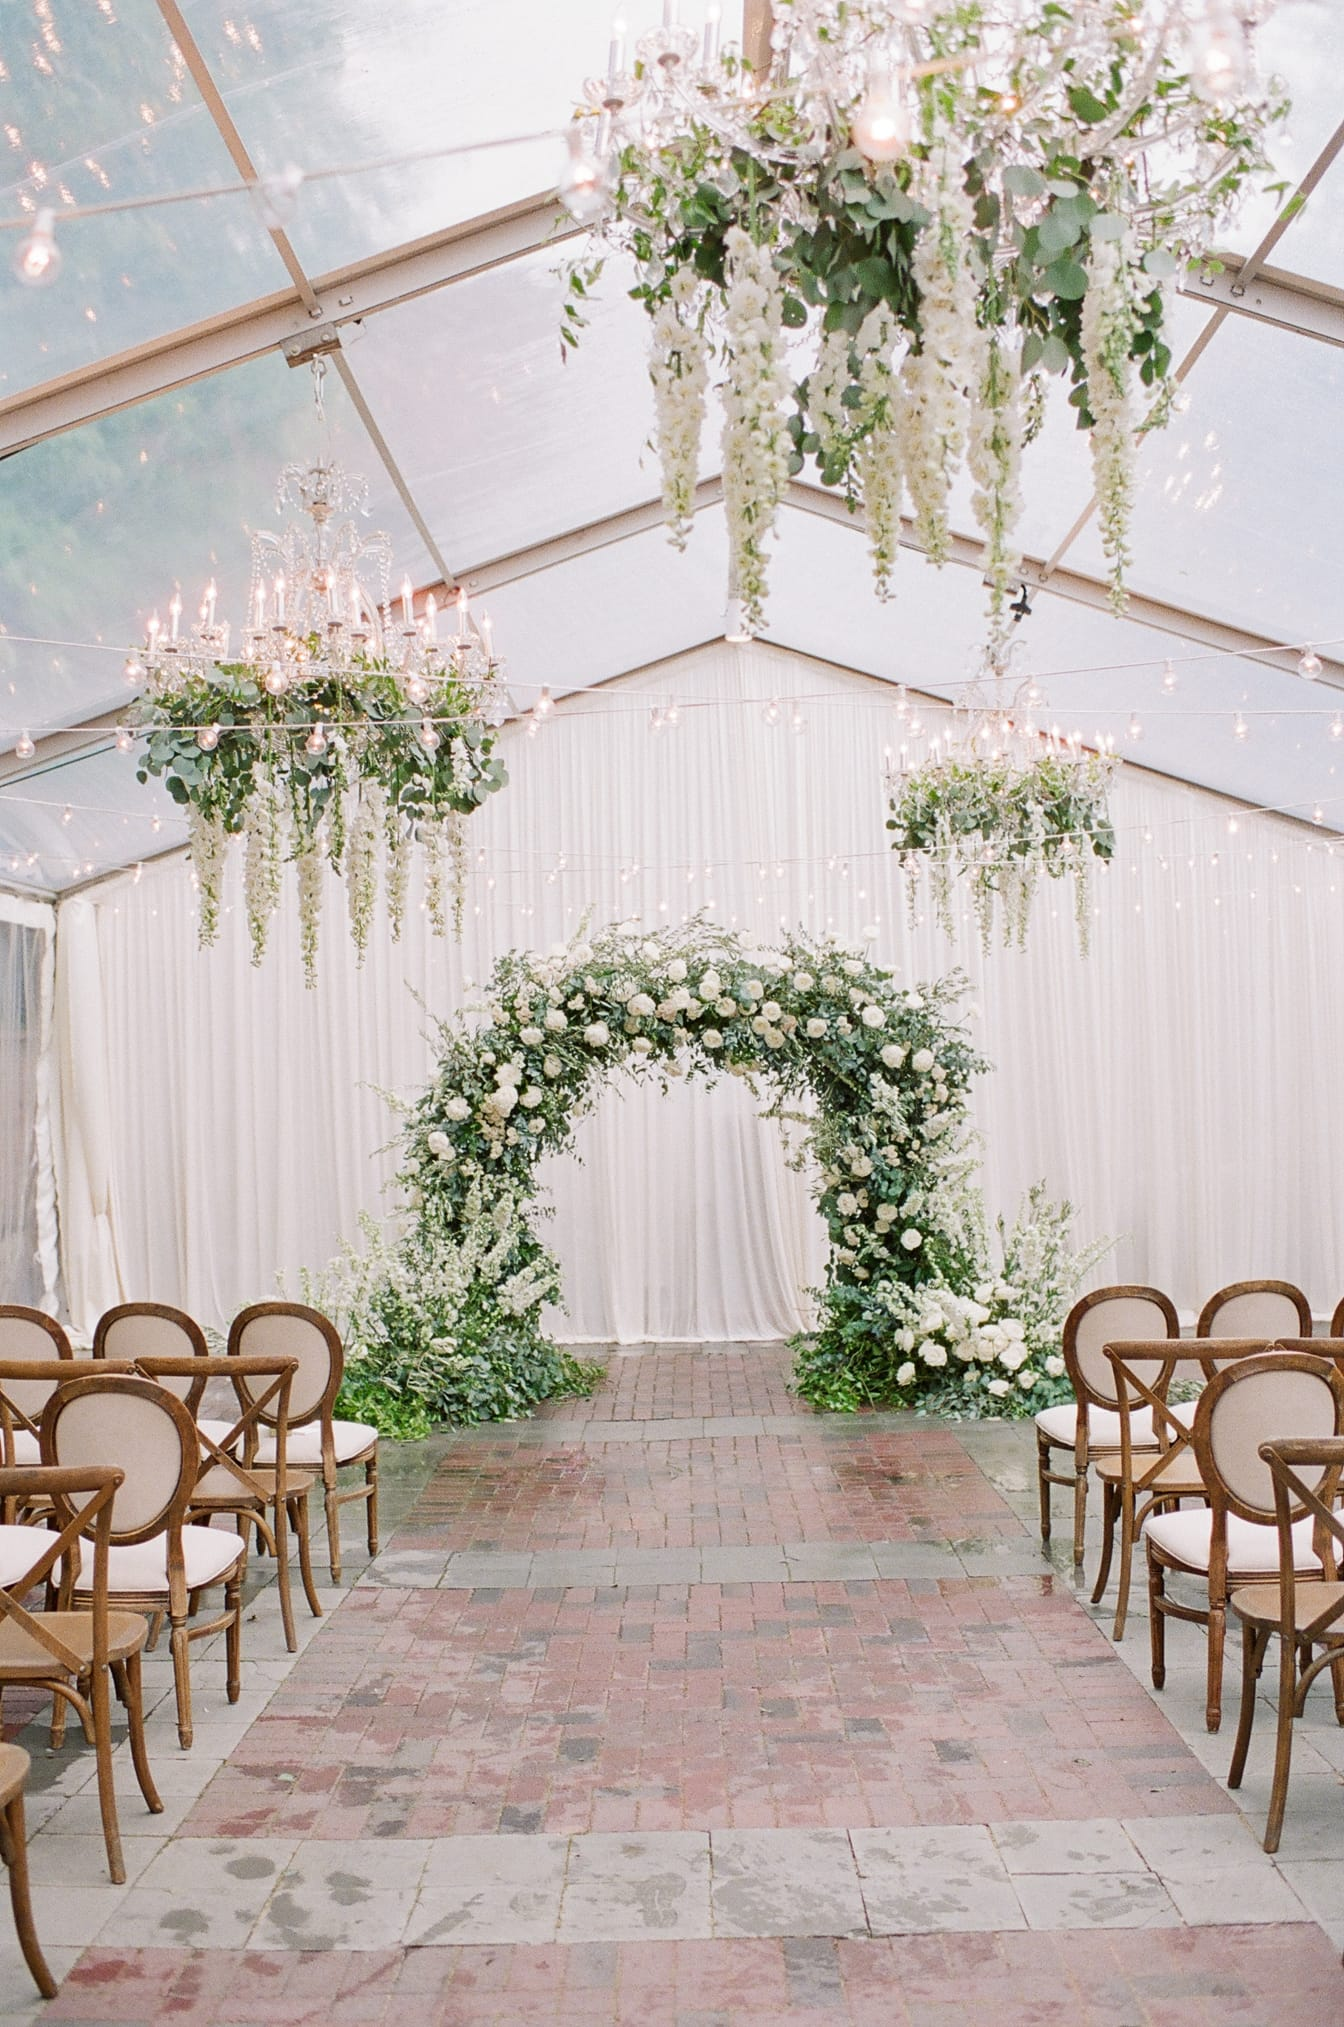 Floral wedding arch with white and green flowers at Chicago Illuminating Company